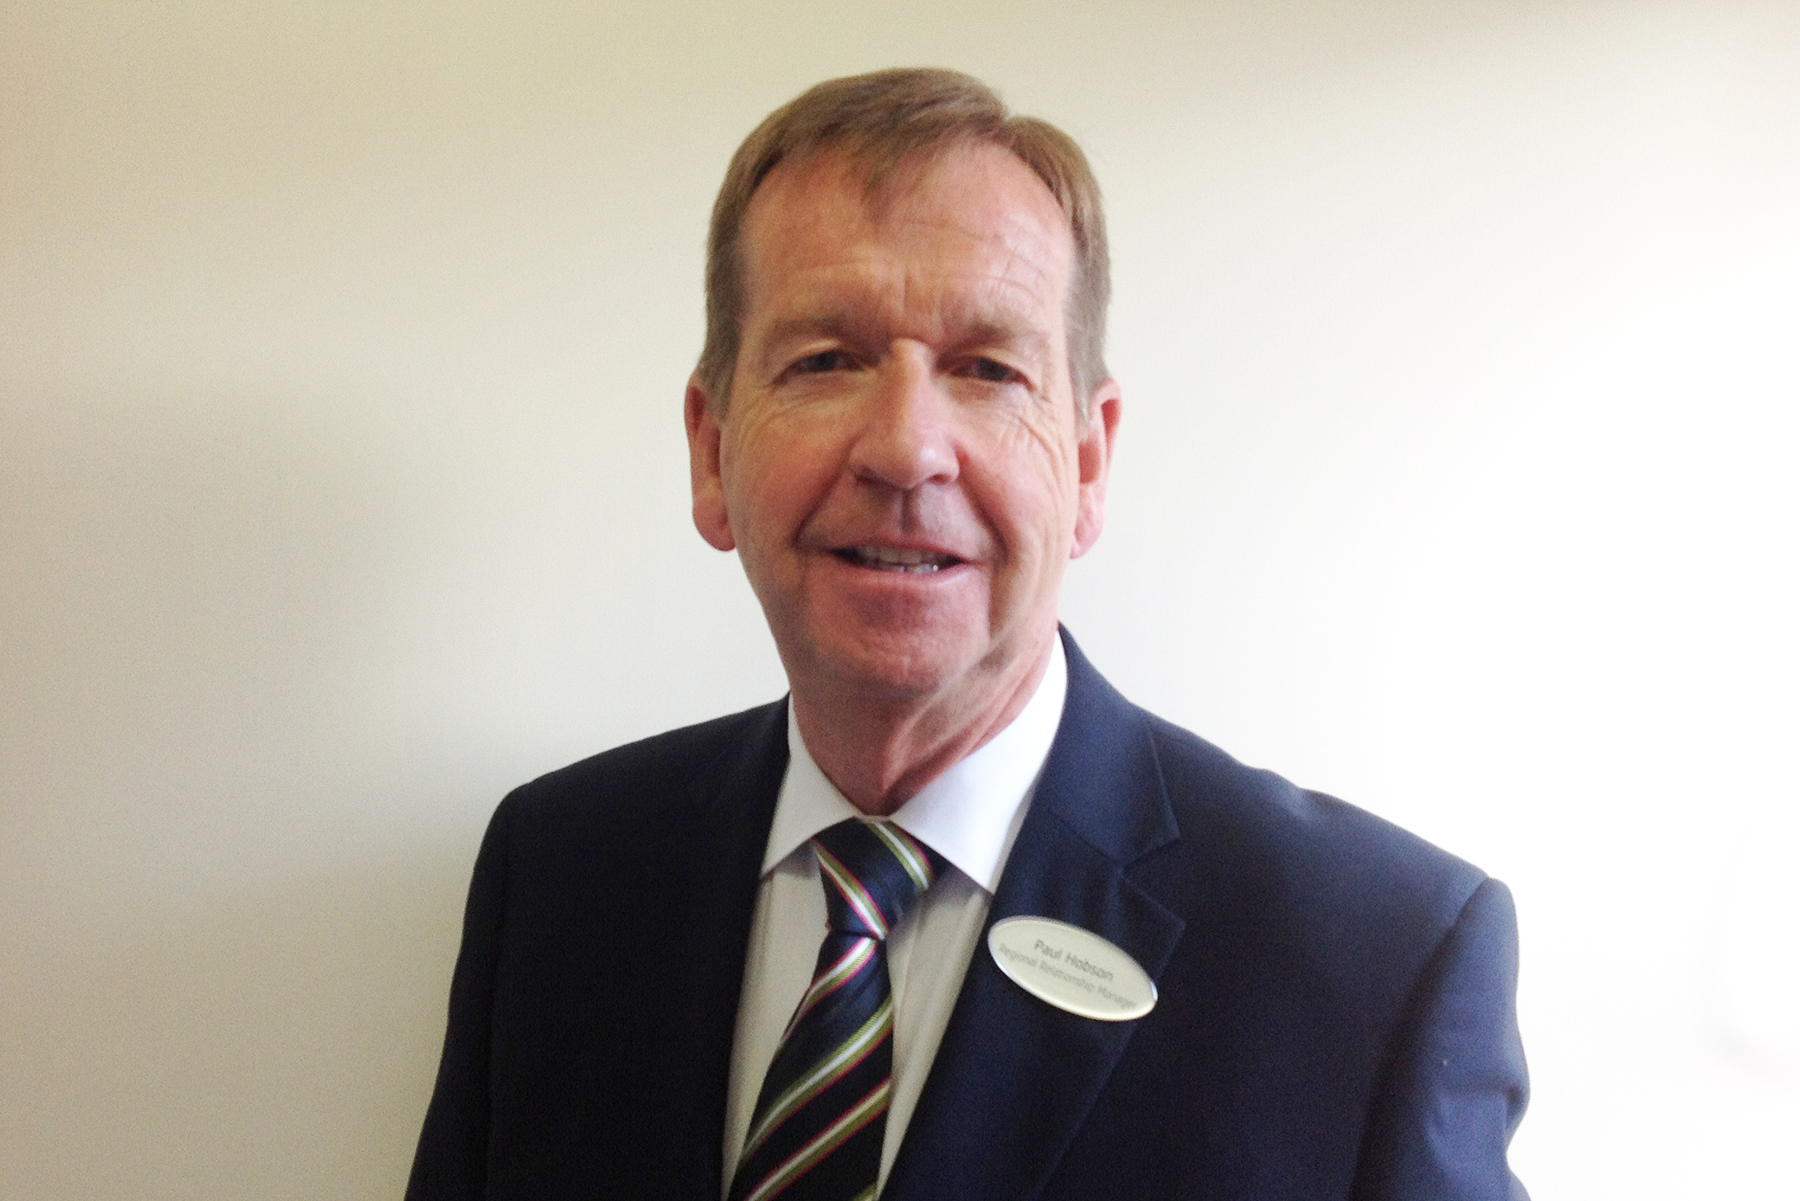 Q&A with Paul Hobson on his retirement from almost 20 years at Specsavers